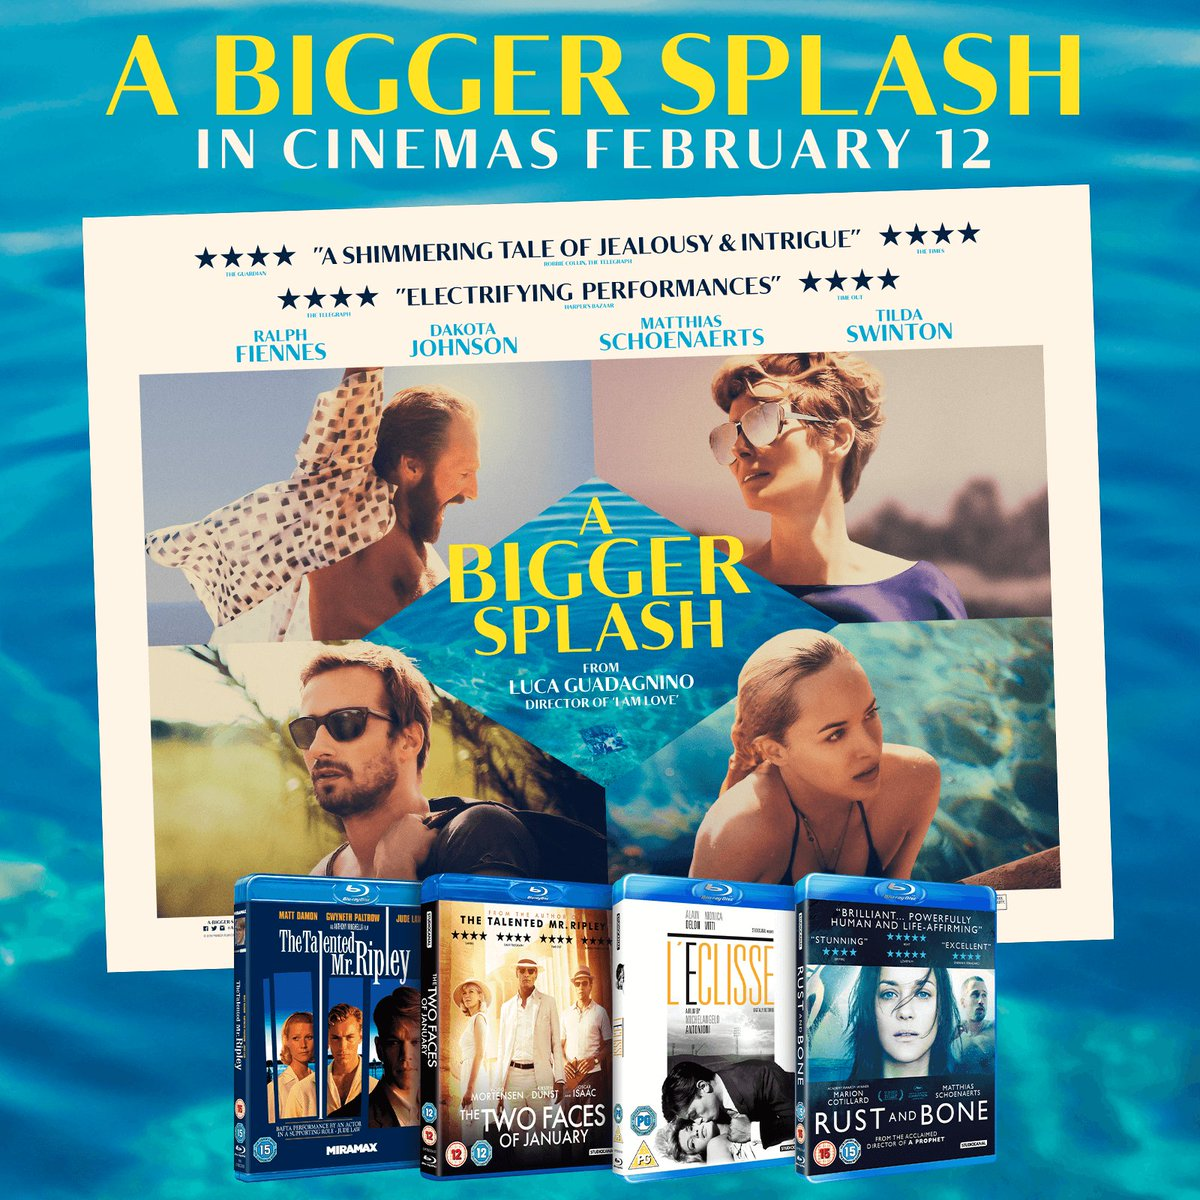 #ABiggerSplash is out this Friday and we've got this ace prize bundle from @StudiocanalUK to giveaway. RT to win! https://t.co/ryCSiQqXcr